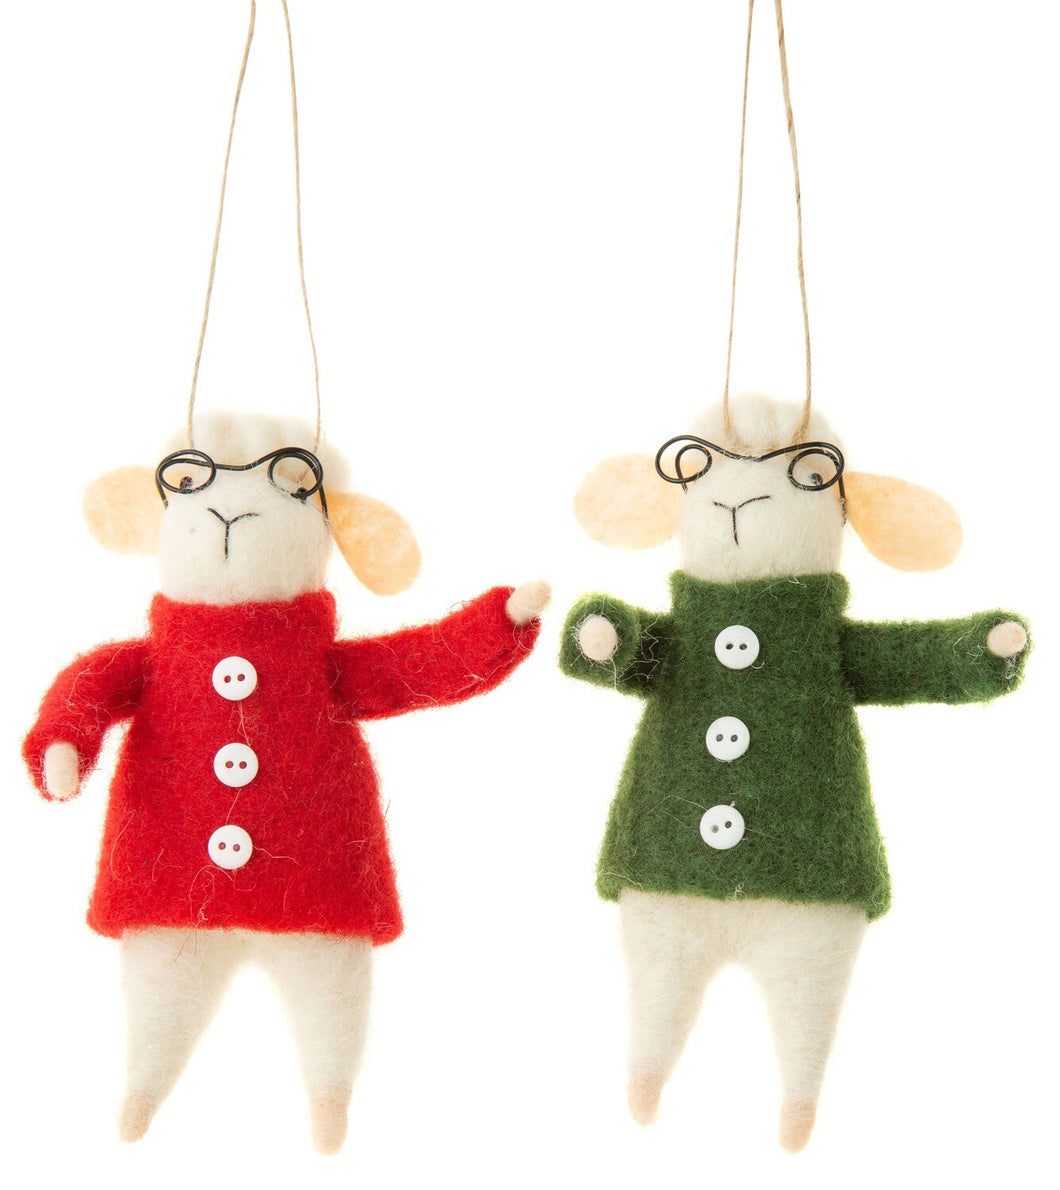 Felt Sheep Ornament - Glasses And Felt Coats